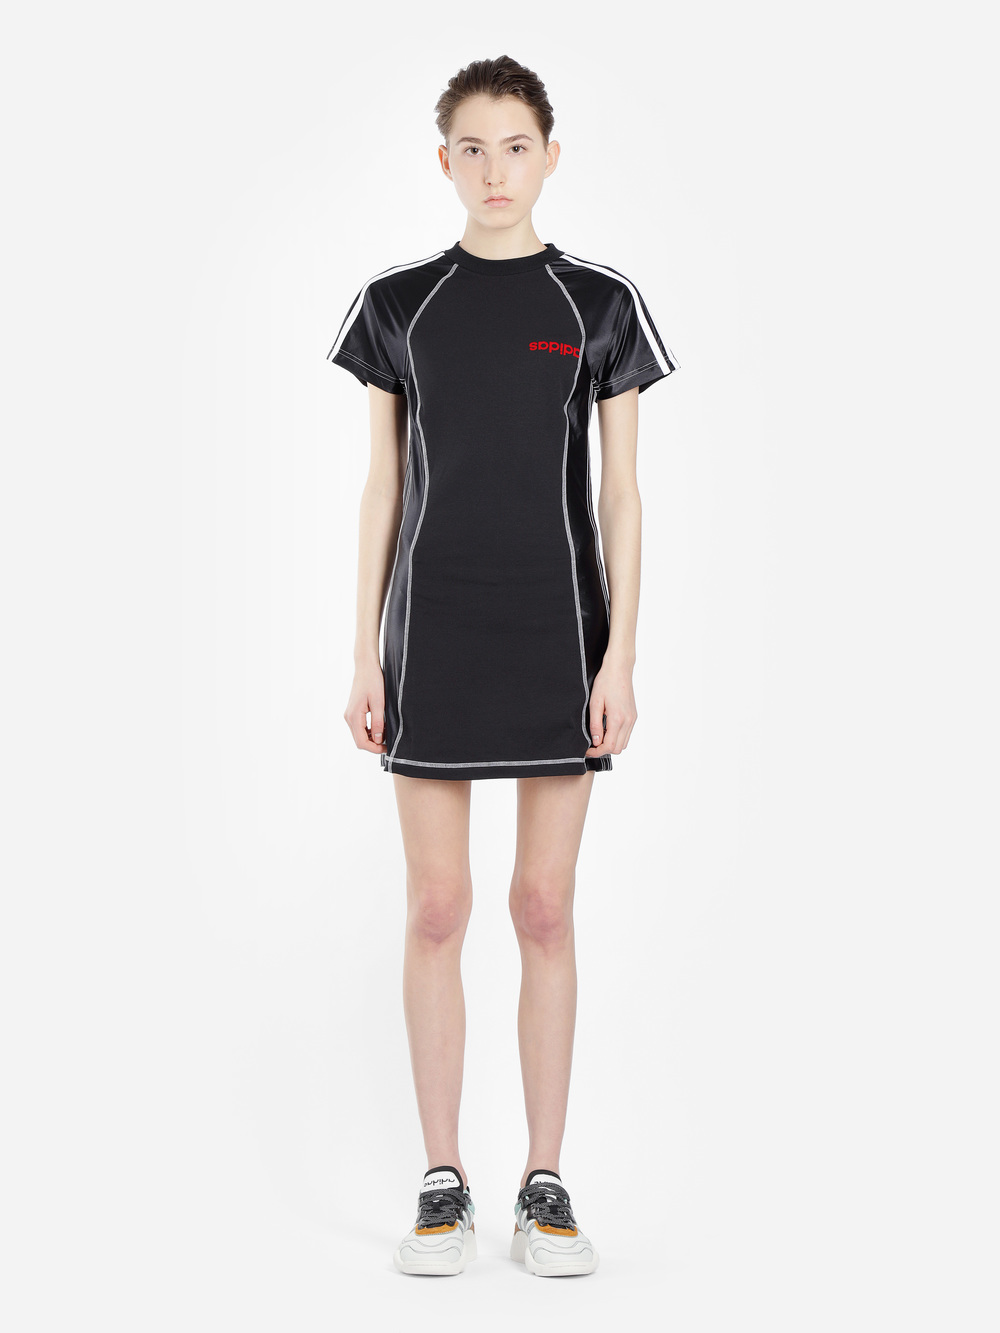 Adidas Originals By Alexander Wang Adidas By Alexander Wang Dresses In Black